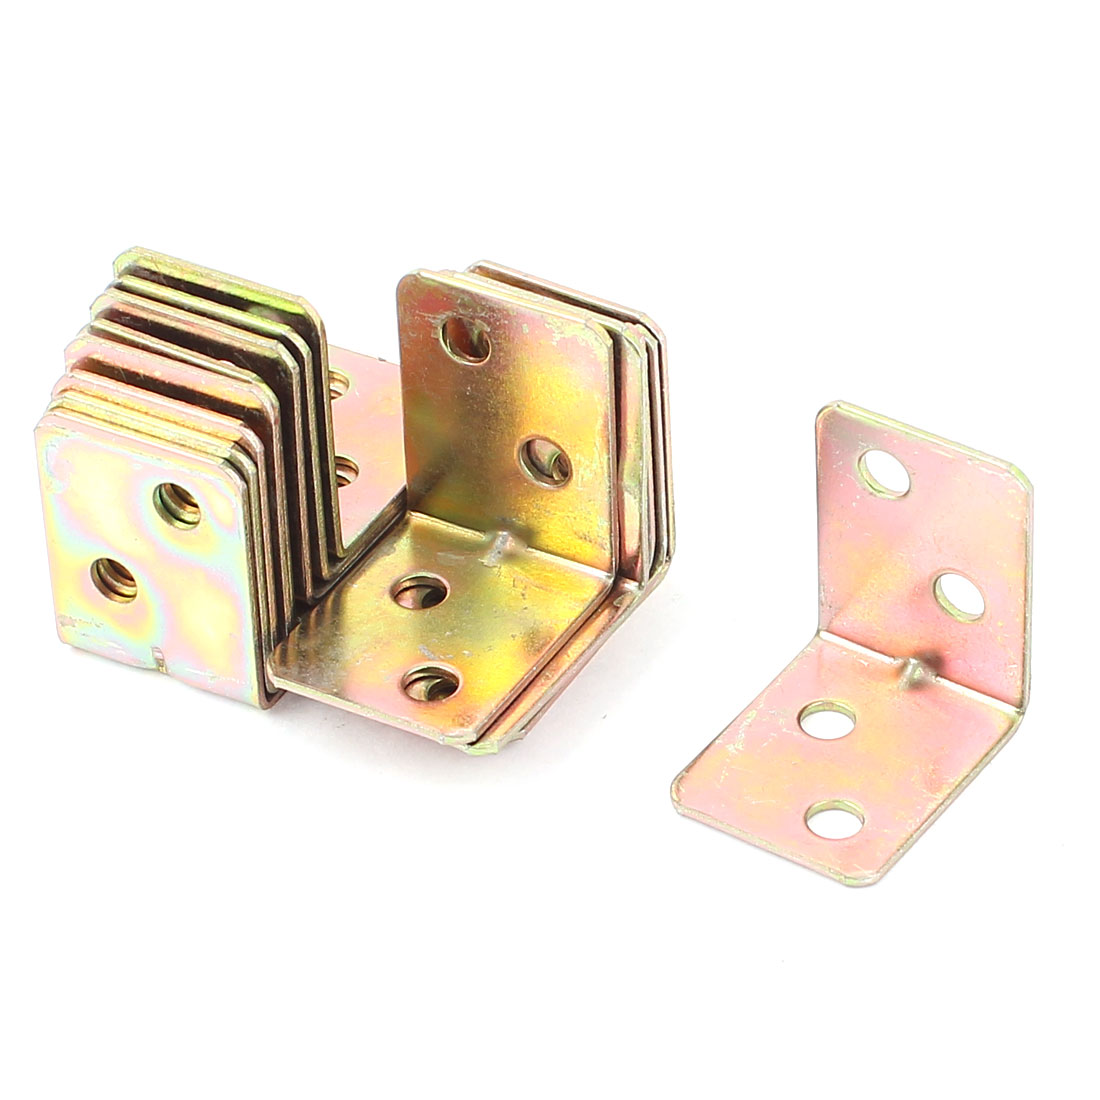 15pcs Shelf Support Corner Braces Fixing Repair Angle Brackets Brass Tone